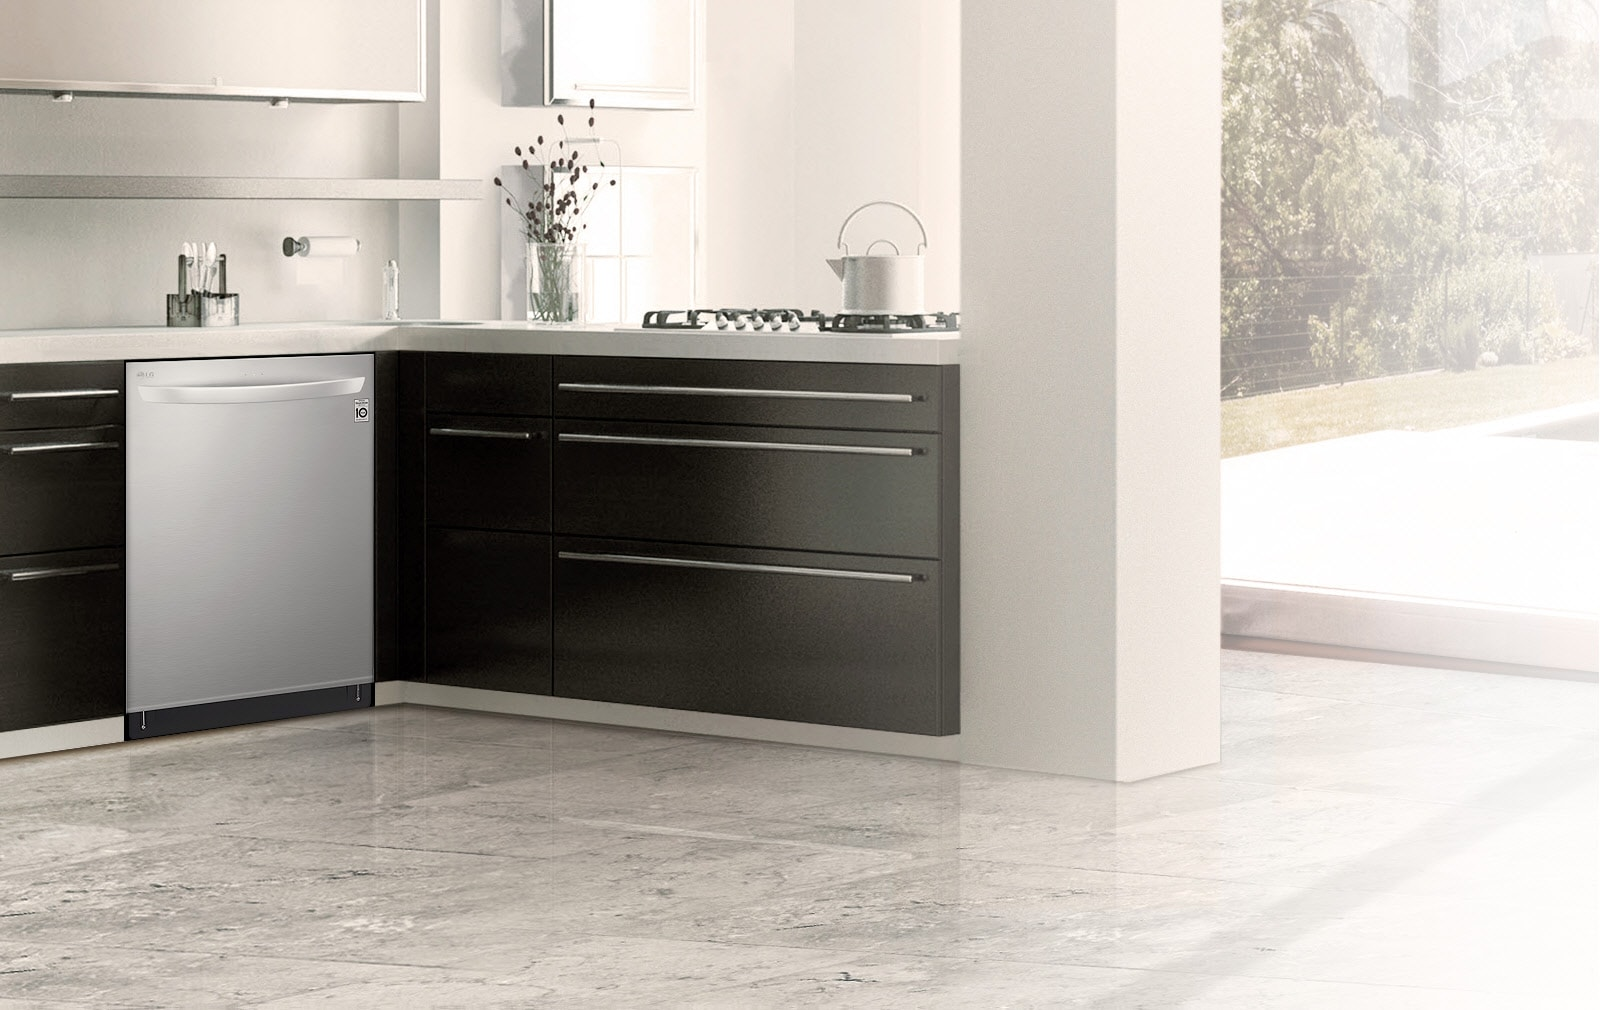 LG Upgrade the Look of Your Kitchen Dishwasher